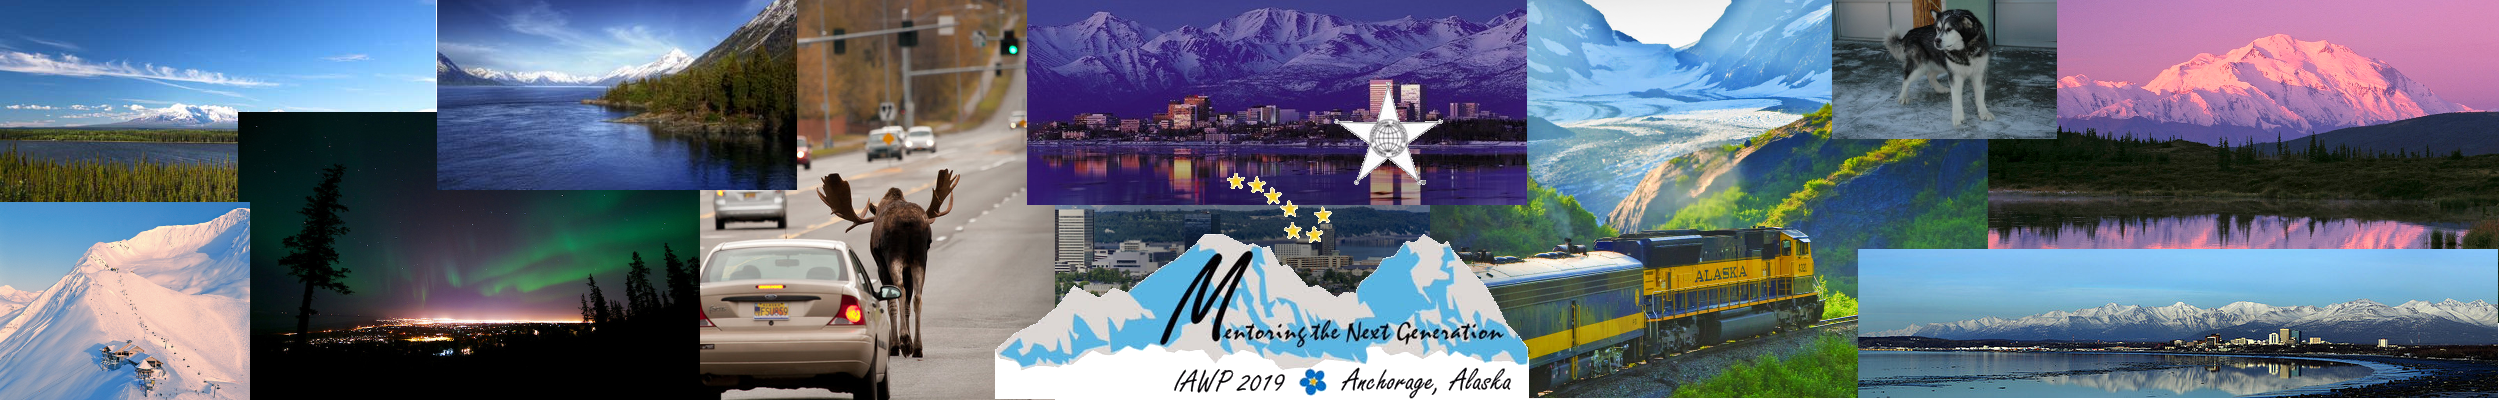 IAWP 2019 Conference